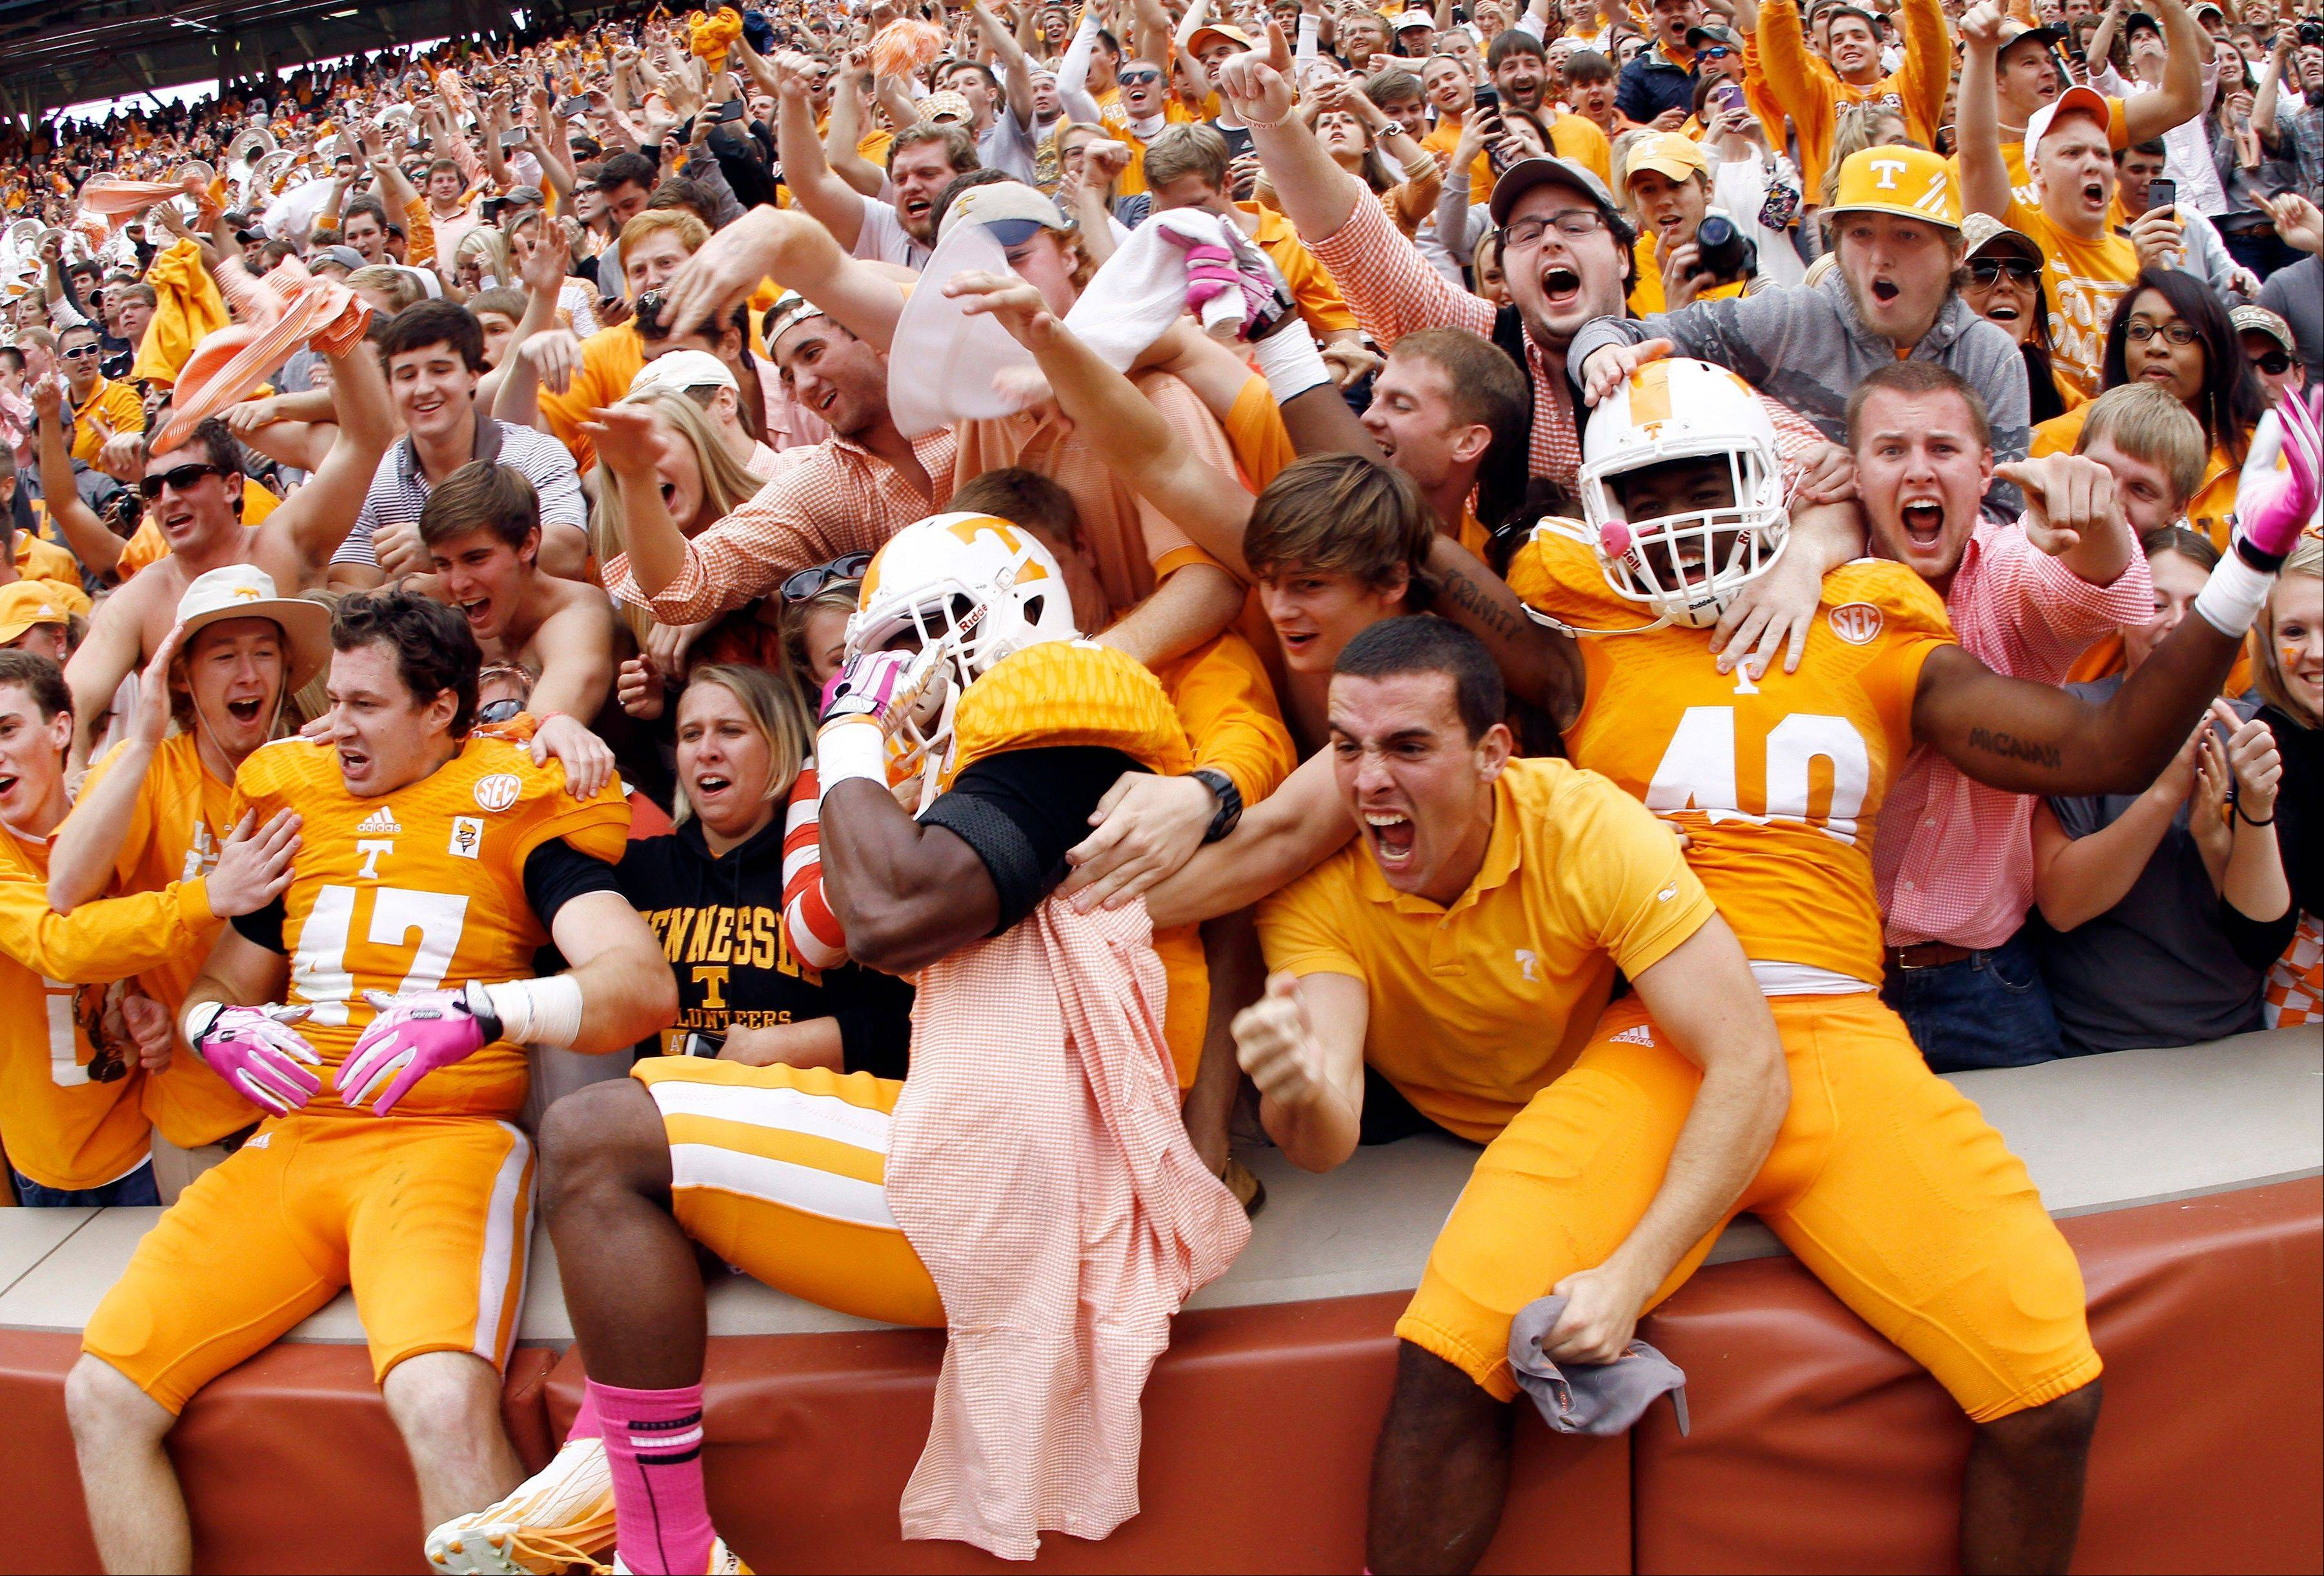 Tennessee linebacker Raiques Crump (40), defensive back Michael F. Williams, center, and linebacker John Propst (47) celebrate with fans after their 23-21 victory over South Carolina.